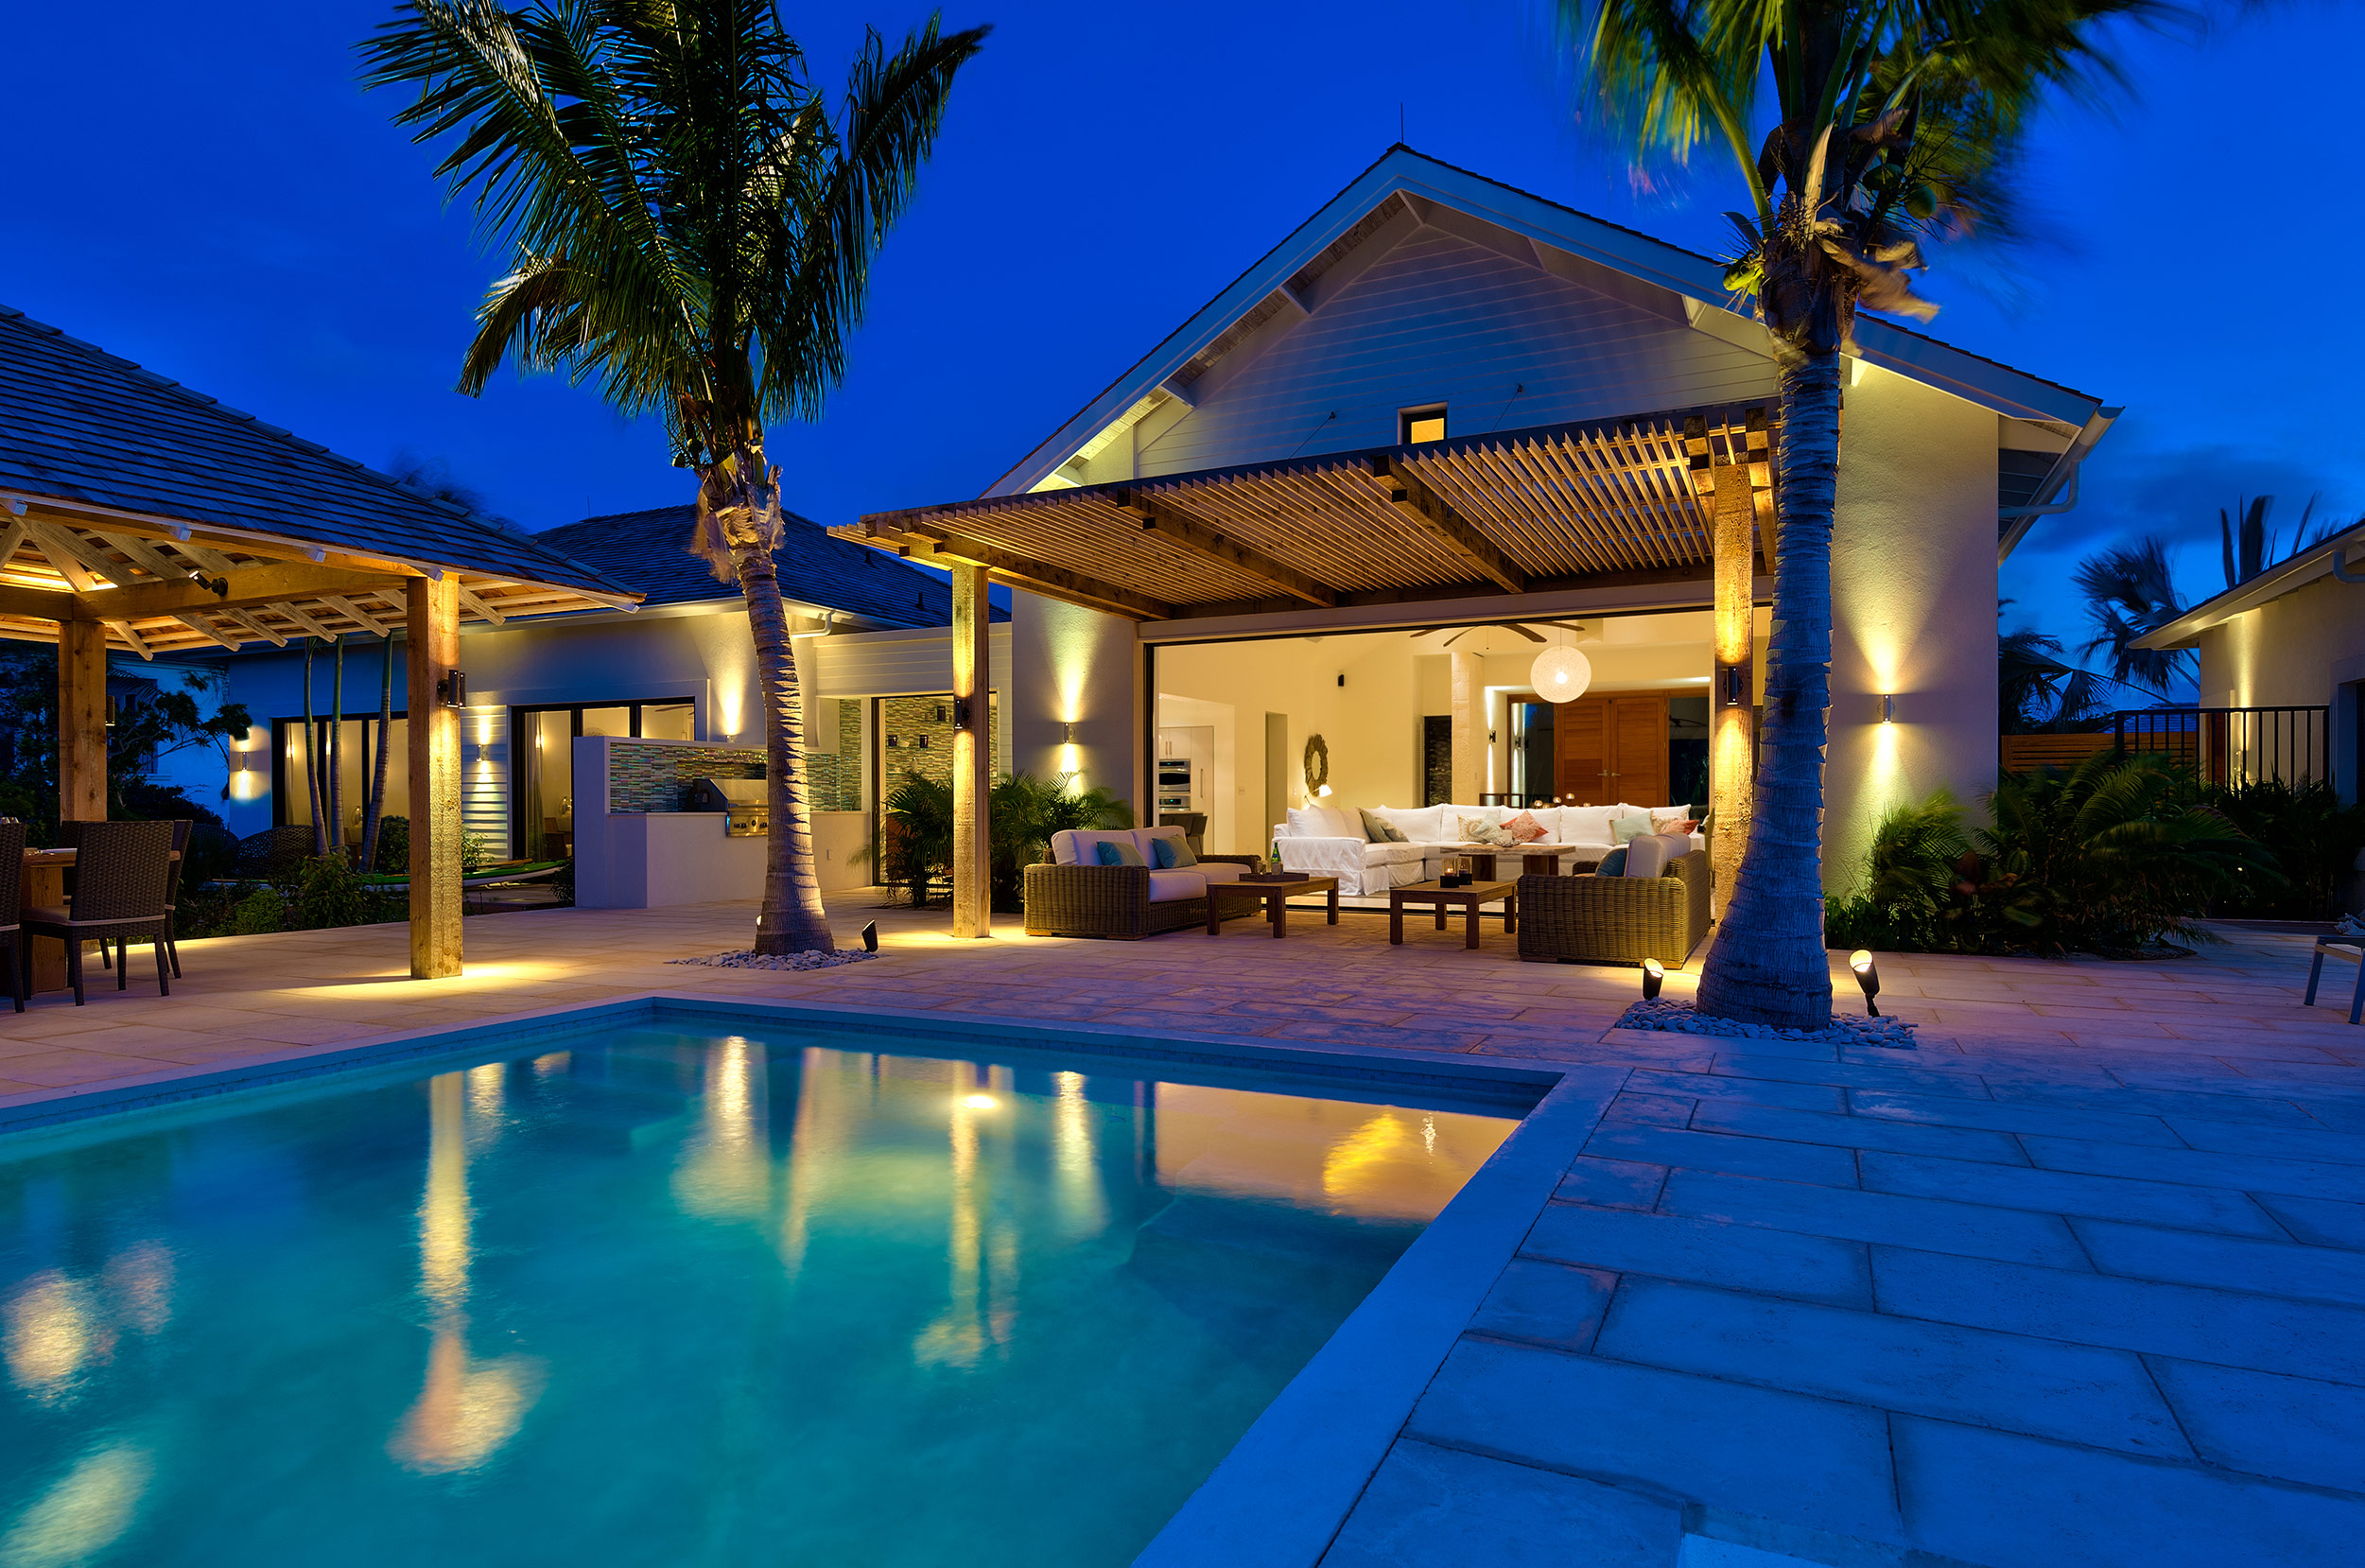 Castaway - evening view of the pool and terrace